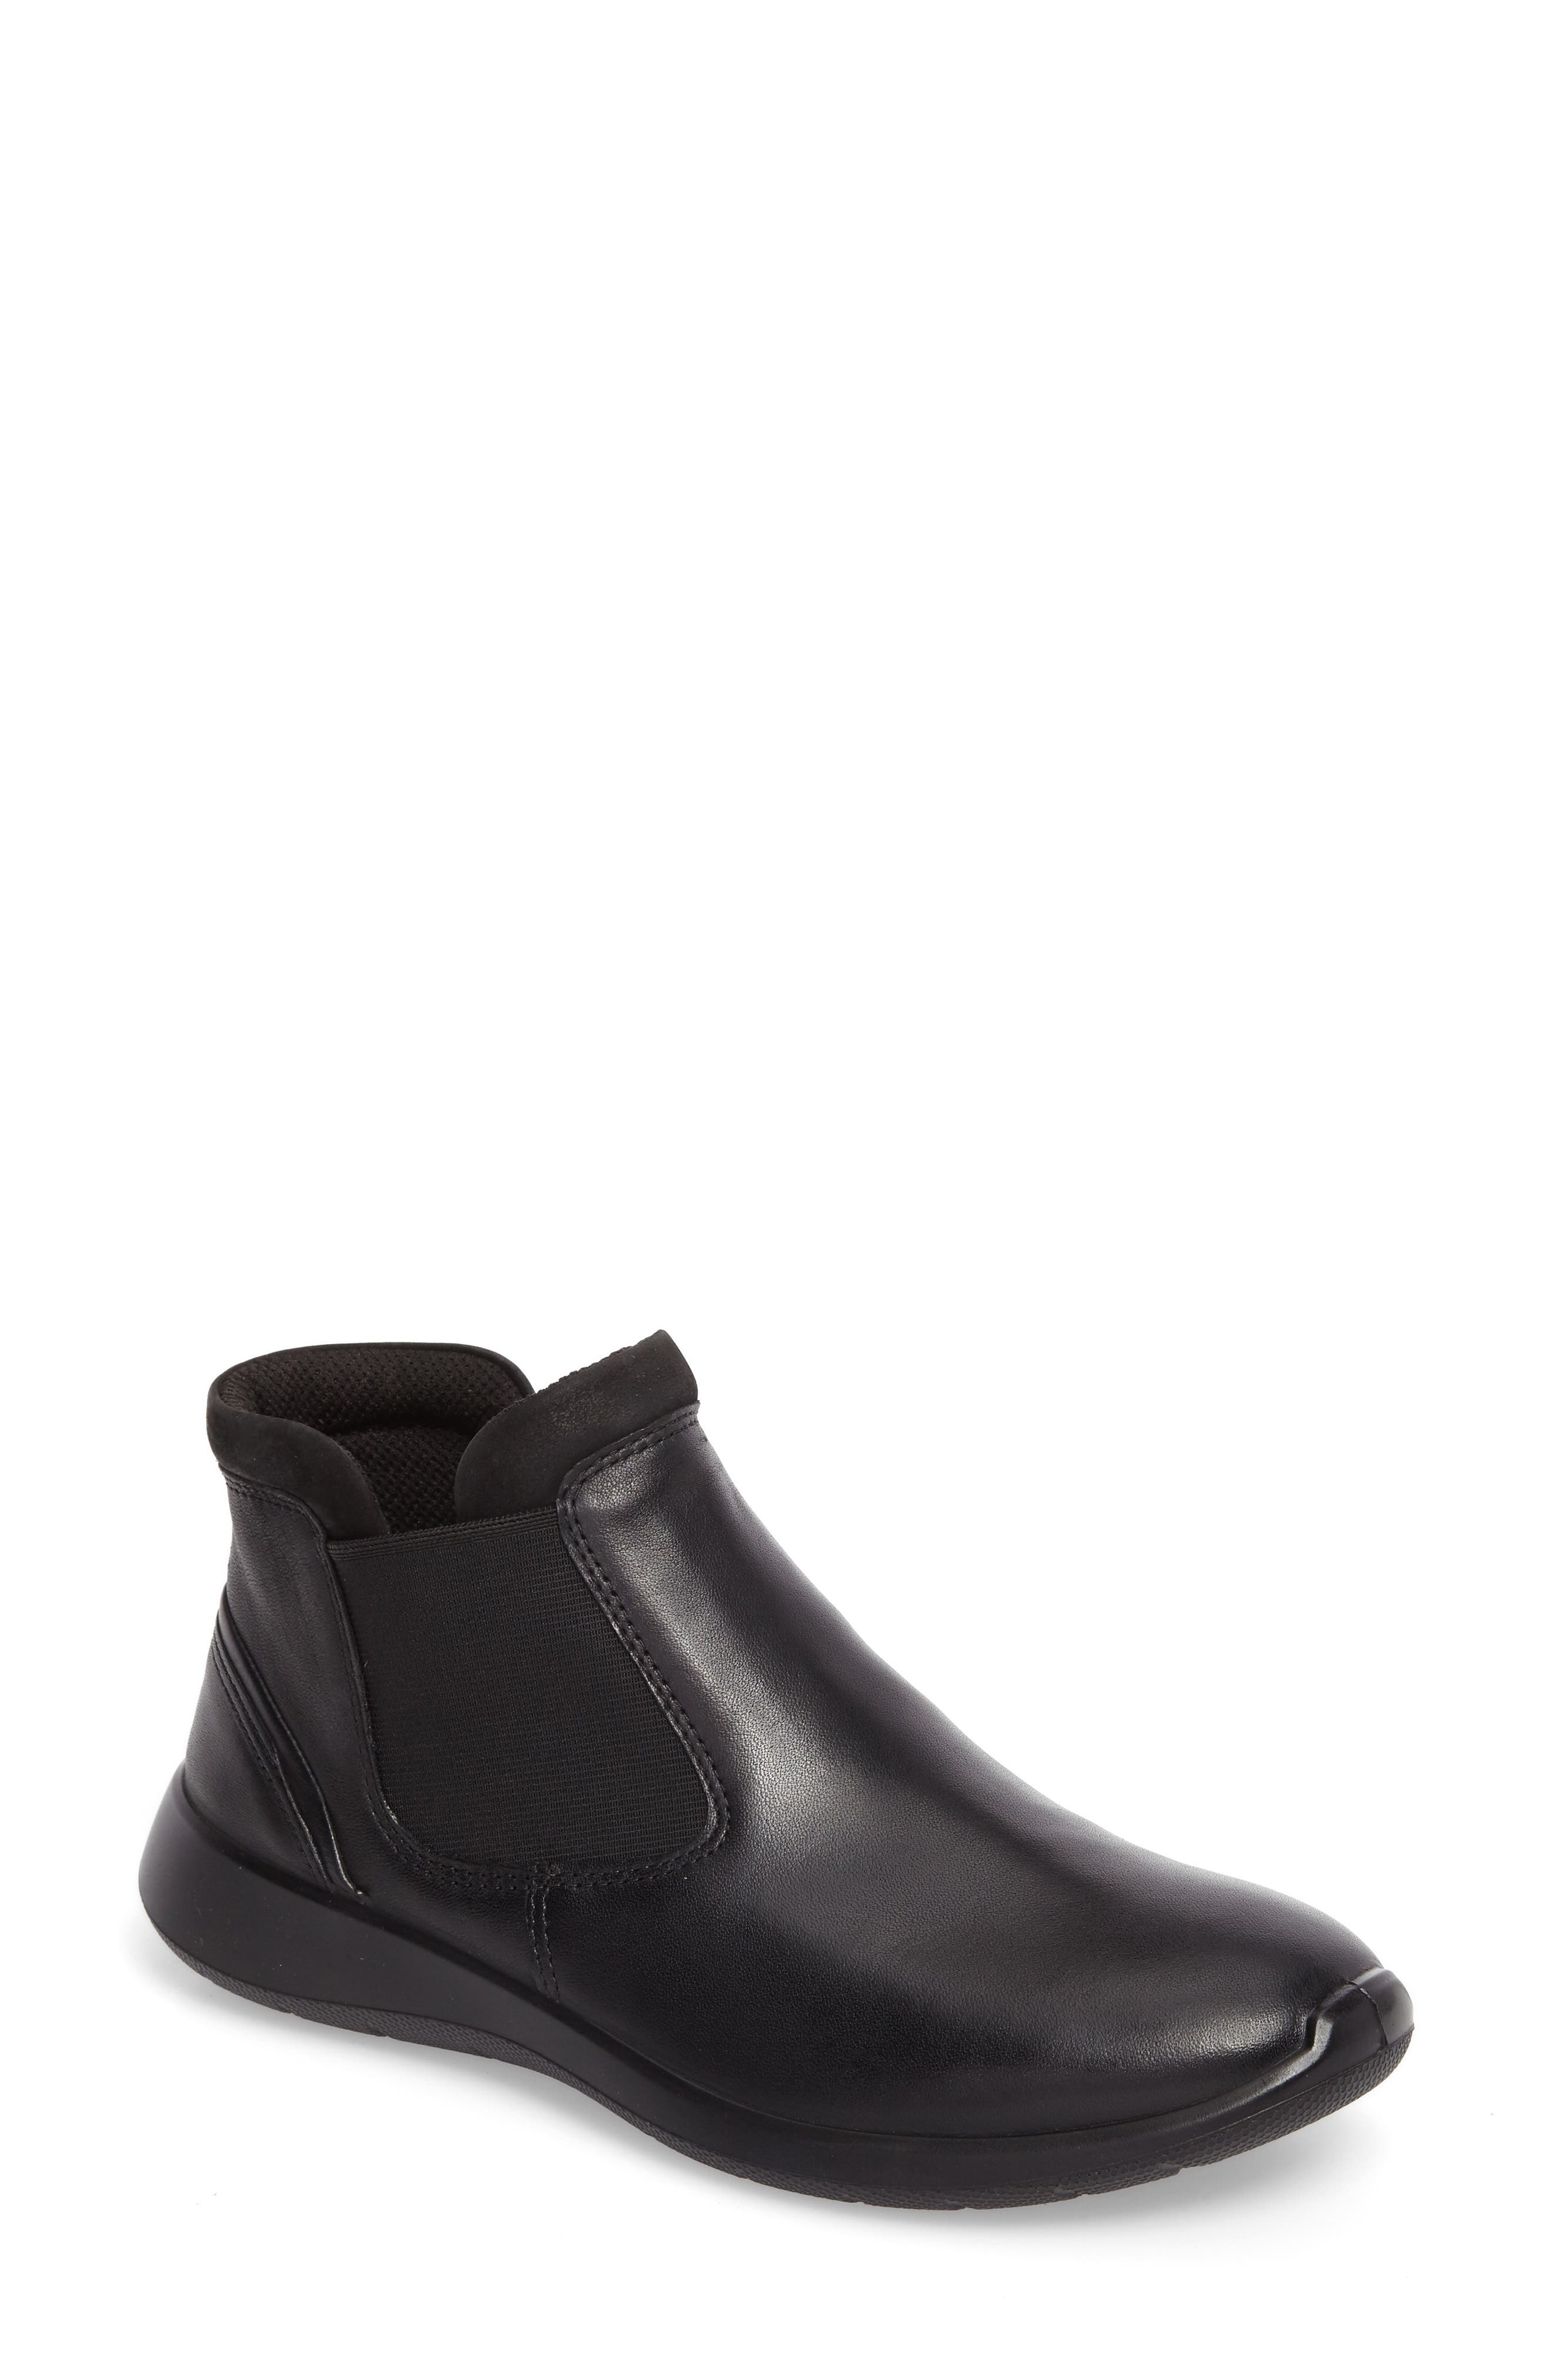 ecco snow boots for women